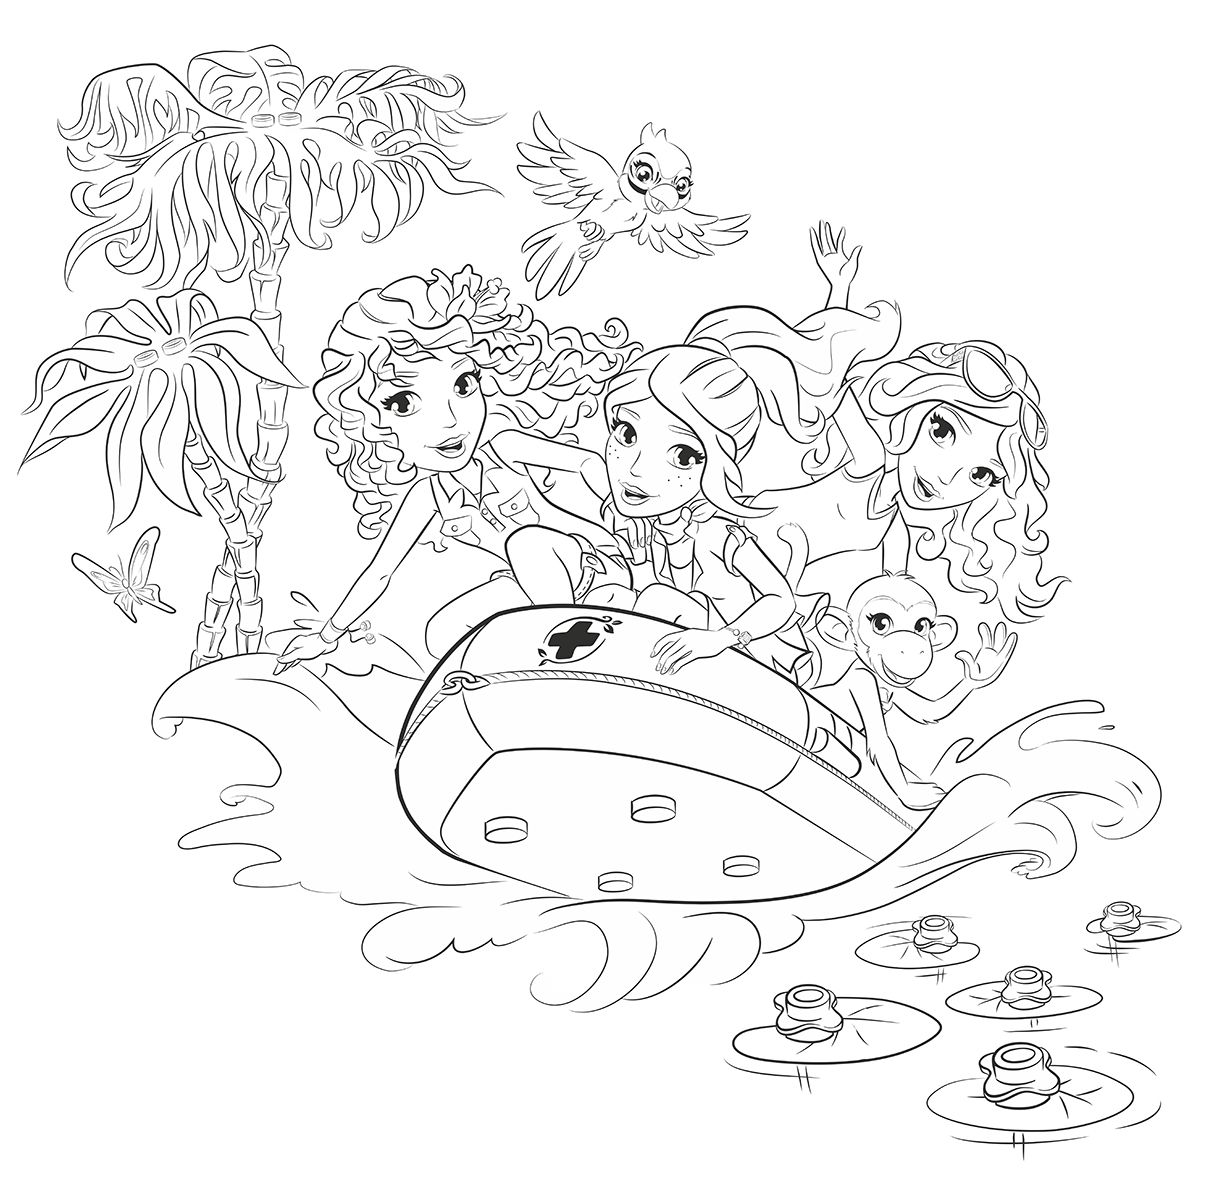 Printable coloring pages lego friends - Az Coloring Tons Of Free Coloring Pages